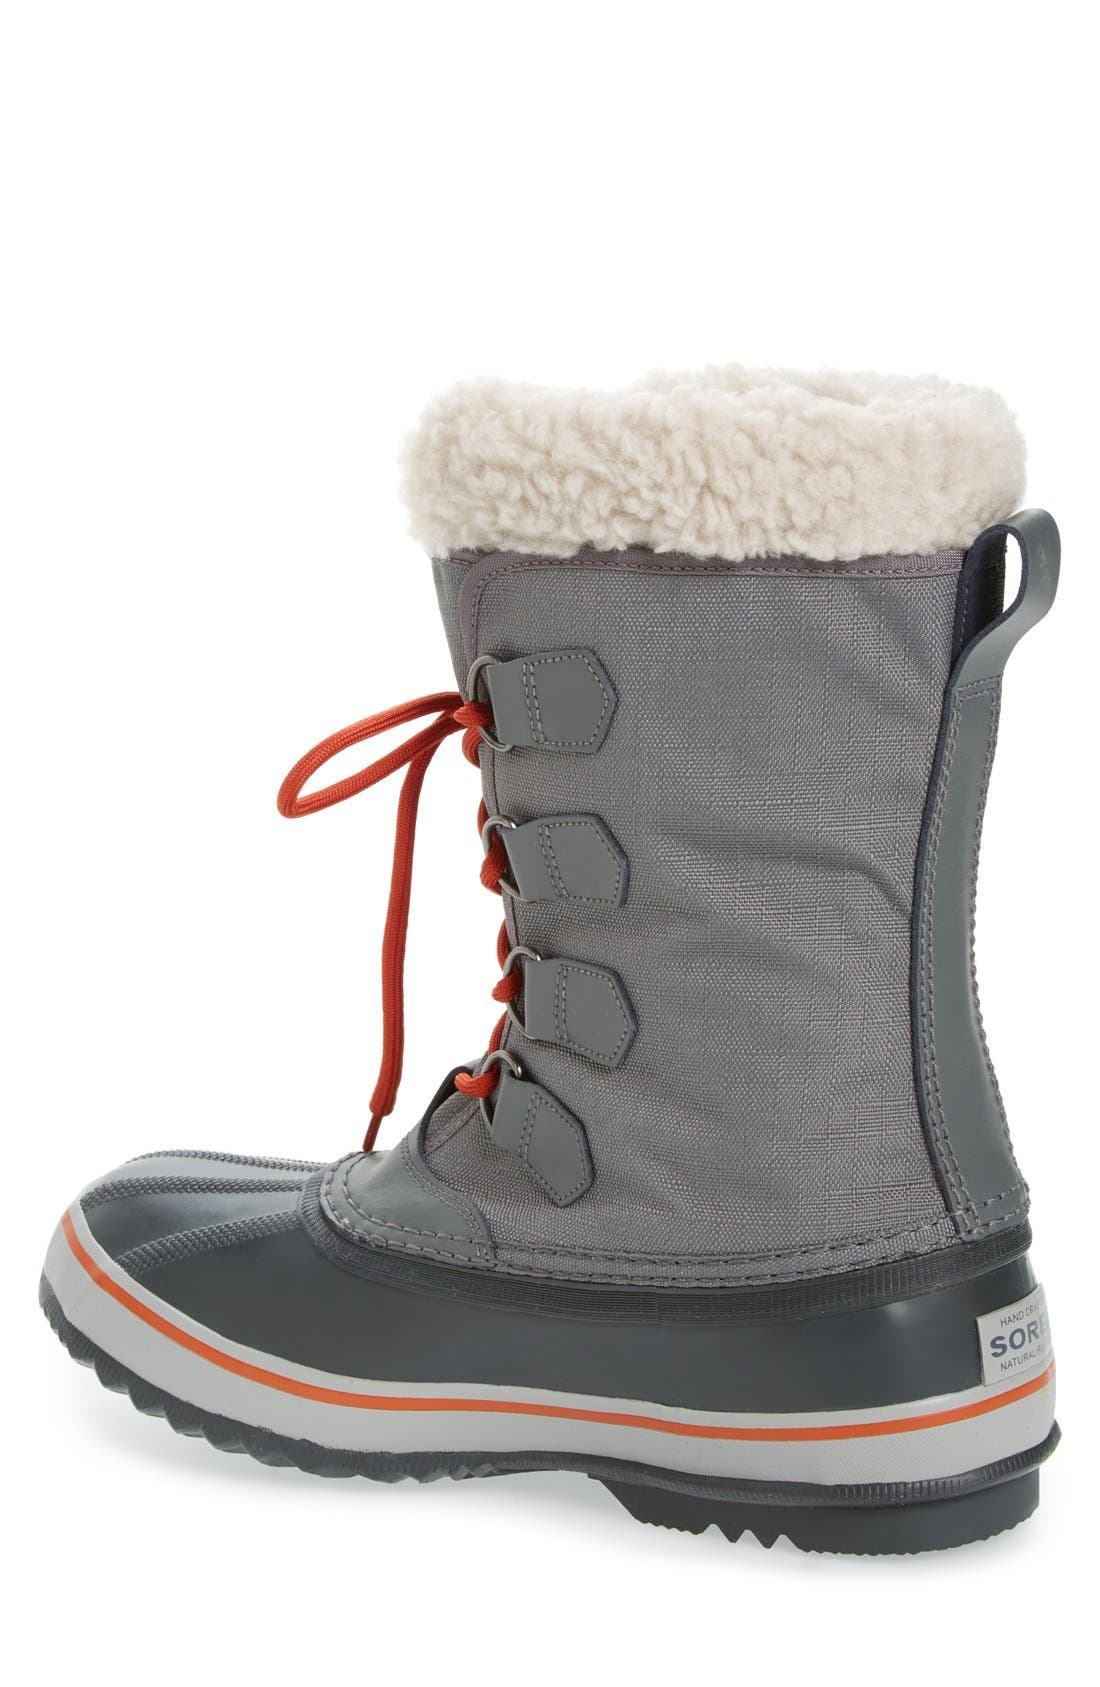 '1964 PAC' Snow Boot,                             Alternate thumbnail 2, color,                             DARK FOG/ SHARK GREY